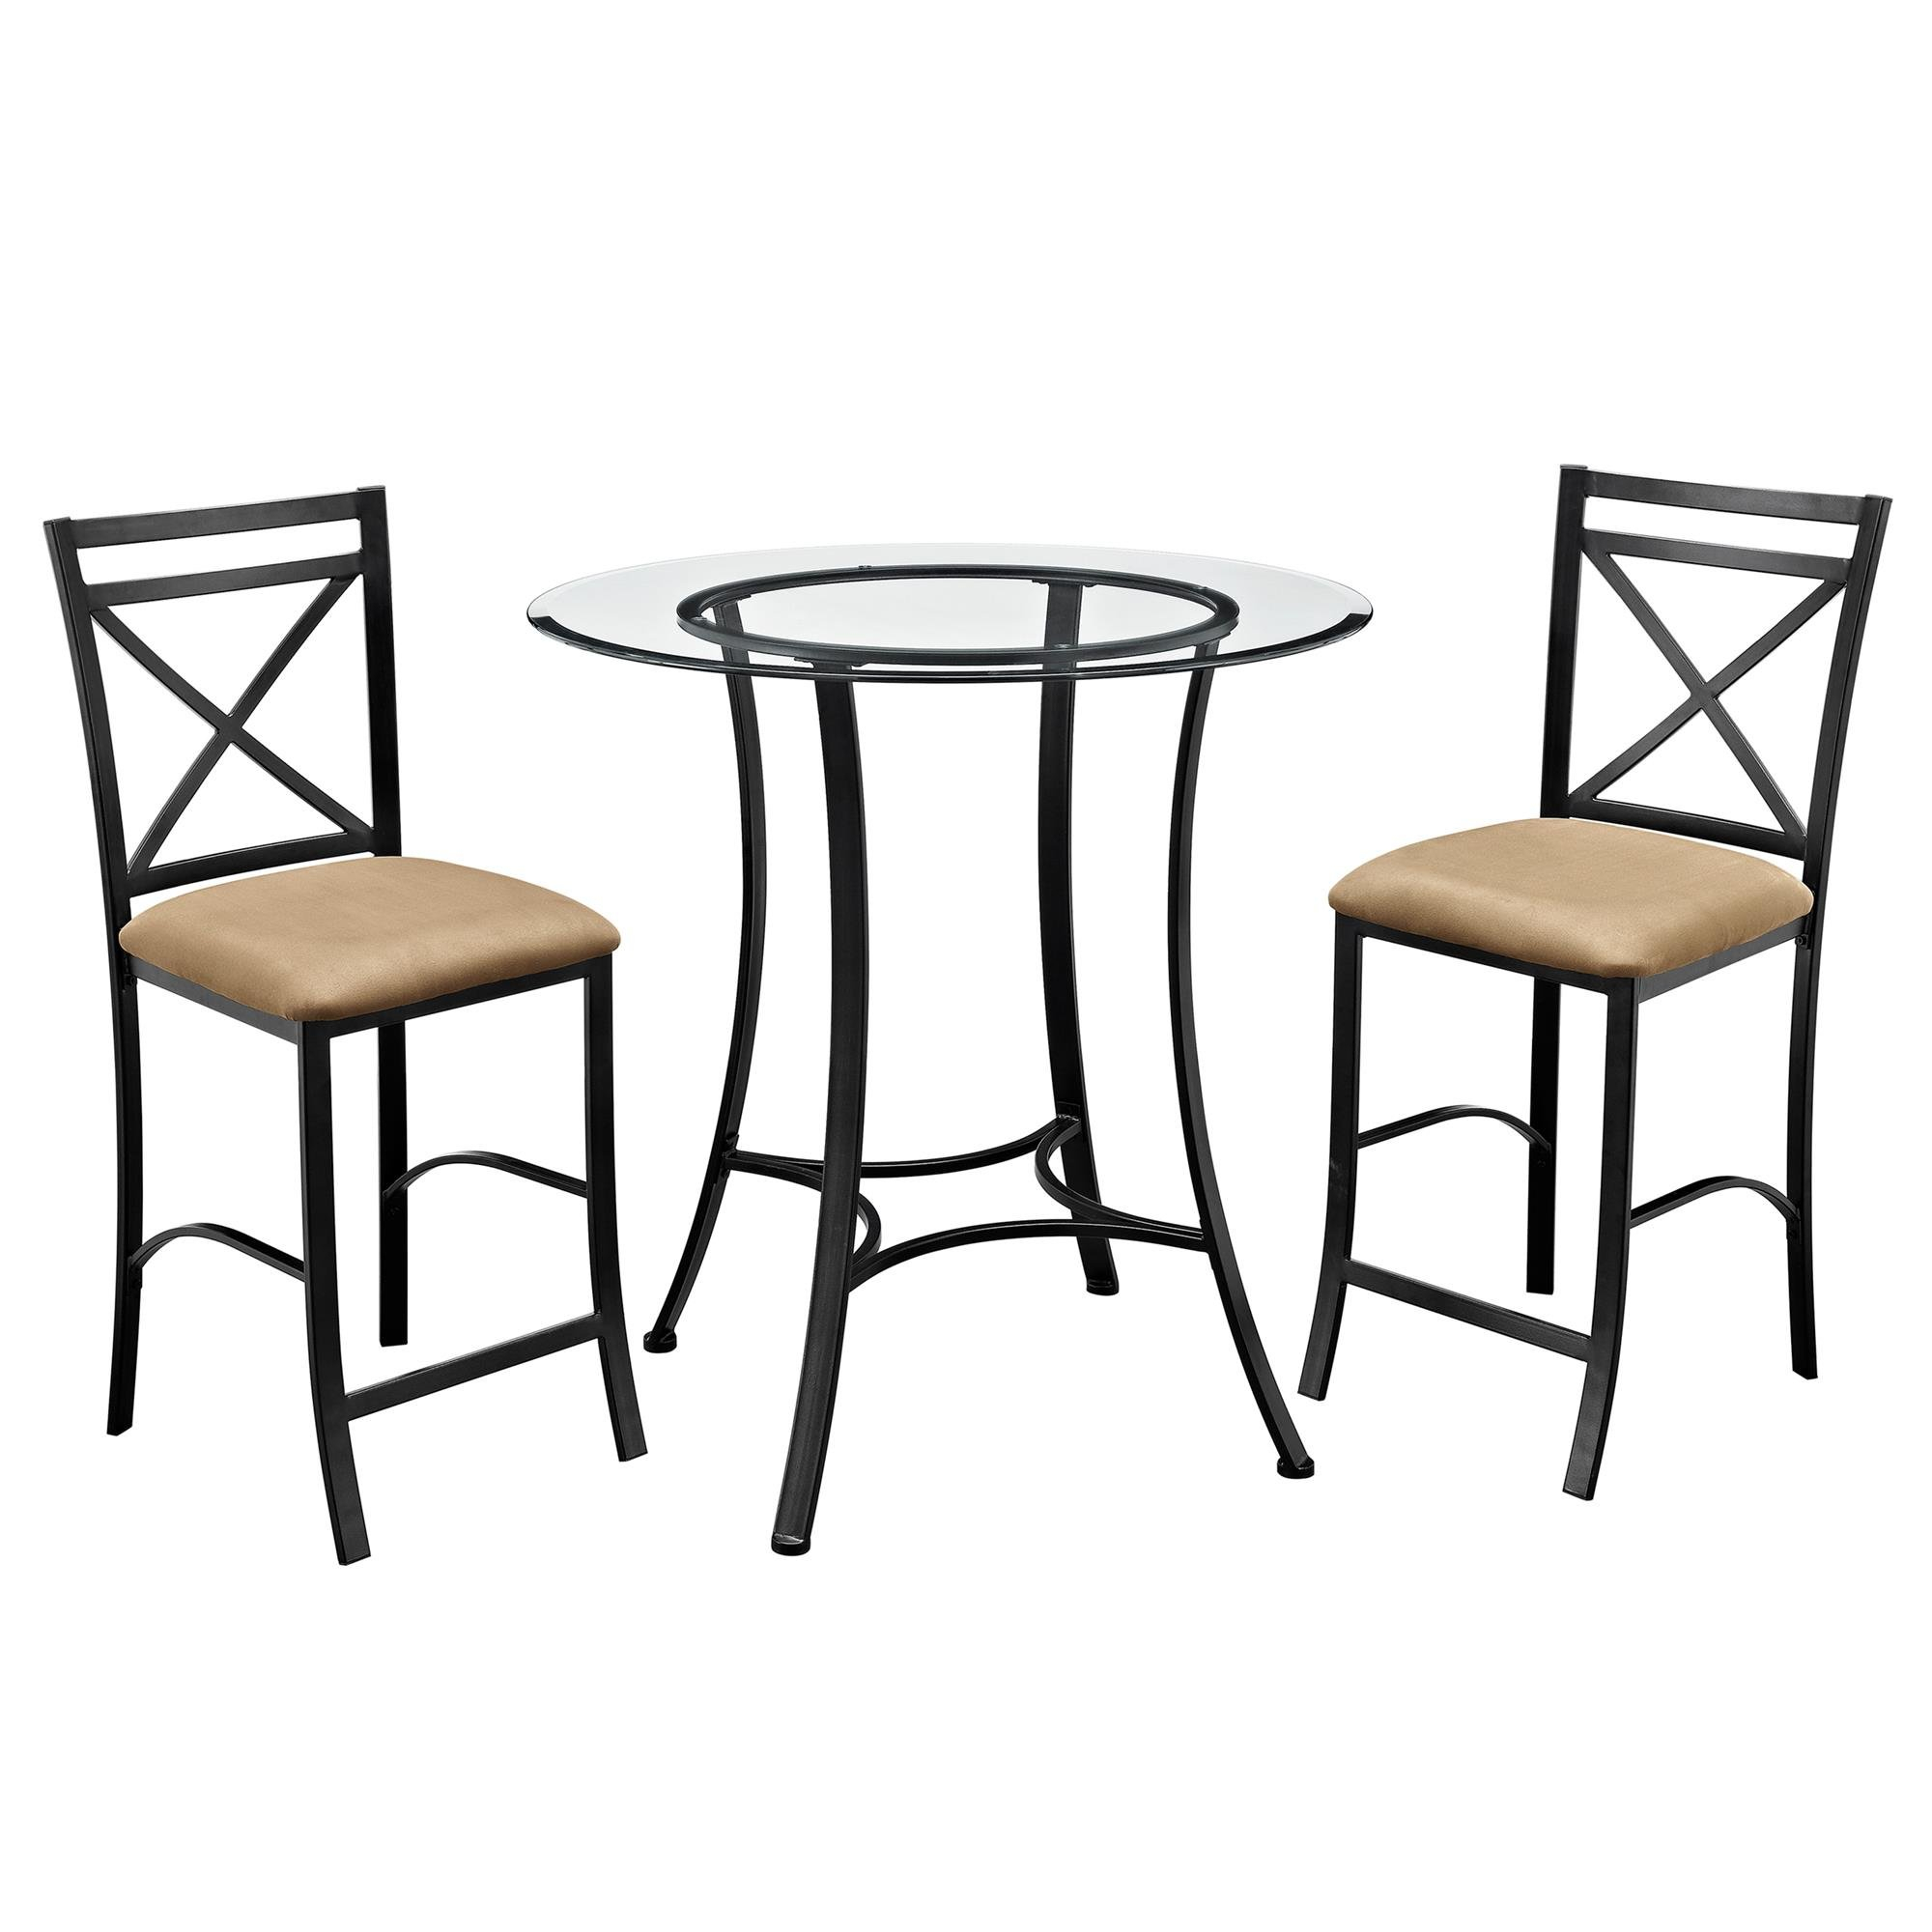 Nutter 3 Piece Dining Sets Pertaining To 2020 Saleh 3 Piece Dining Set & Reviews (View 12 of 20)